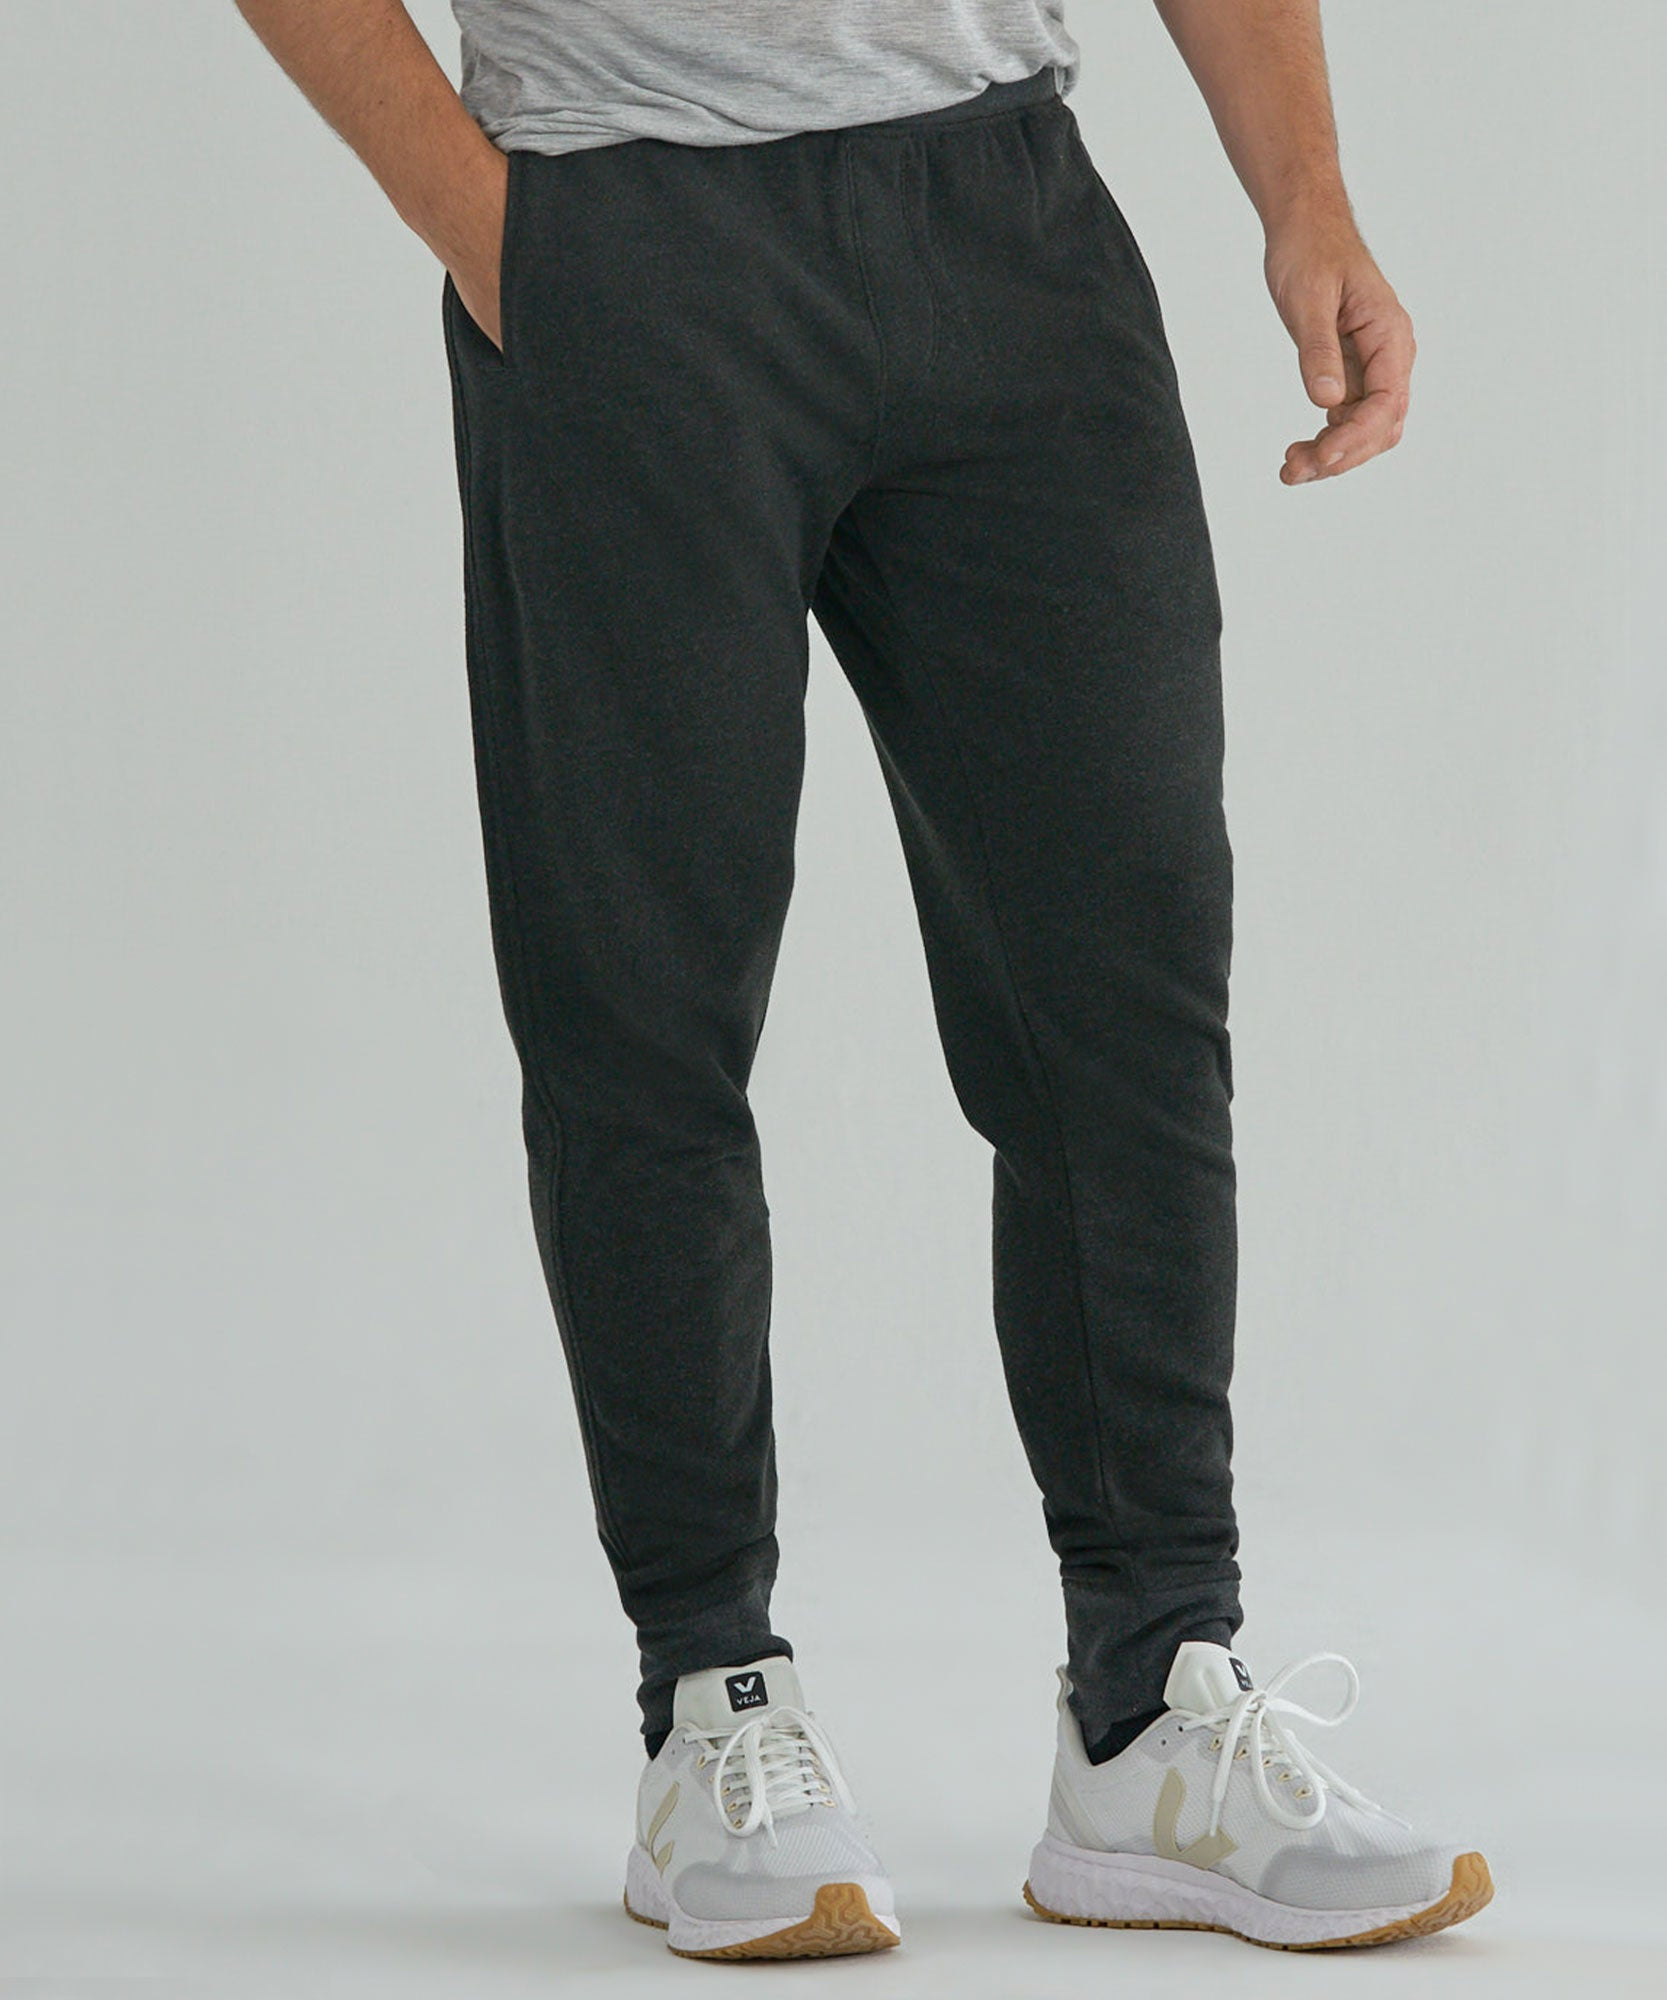 Heather Charcoal French Terry Sweatpants - Men's Luxe Loungewear by ATM Anthony Thomas Melillo